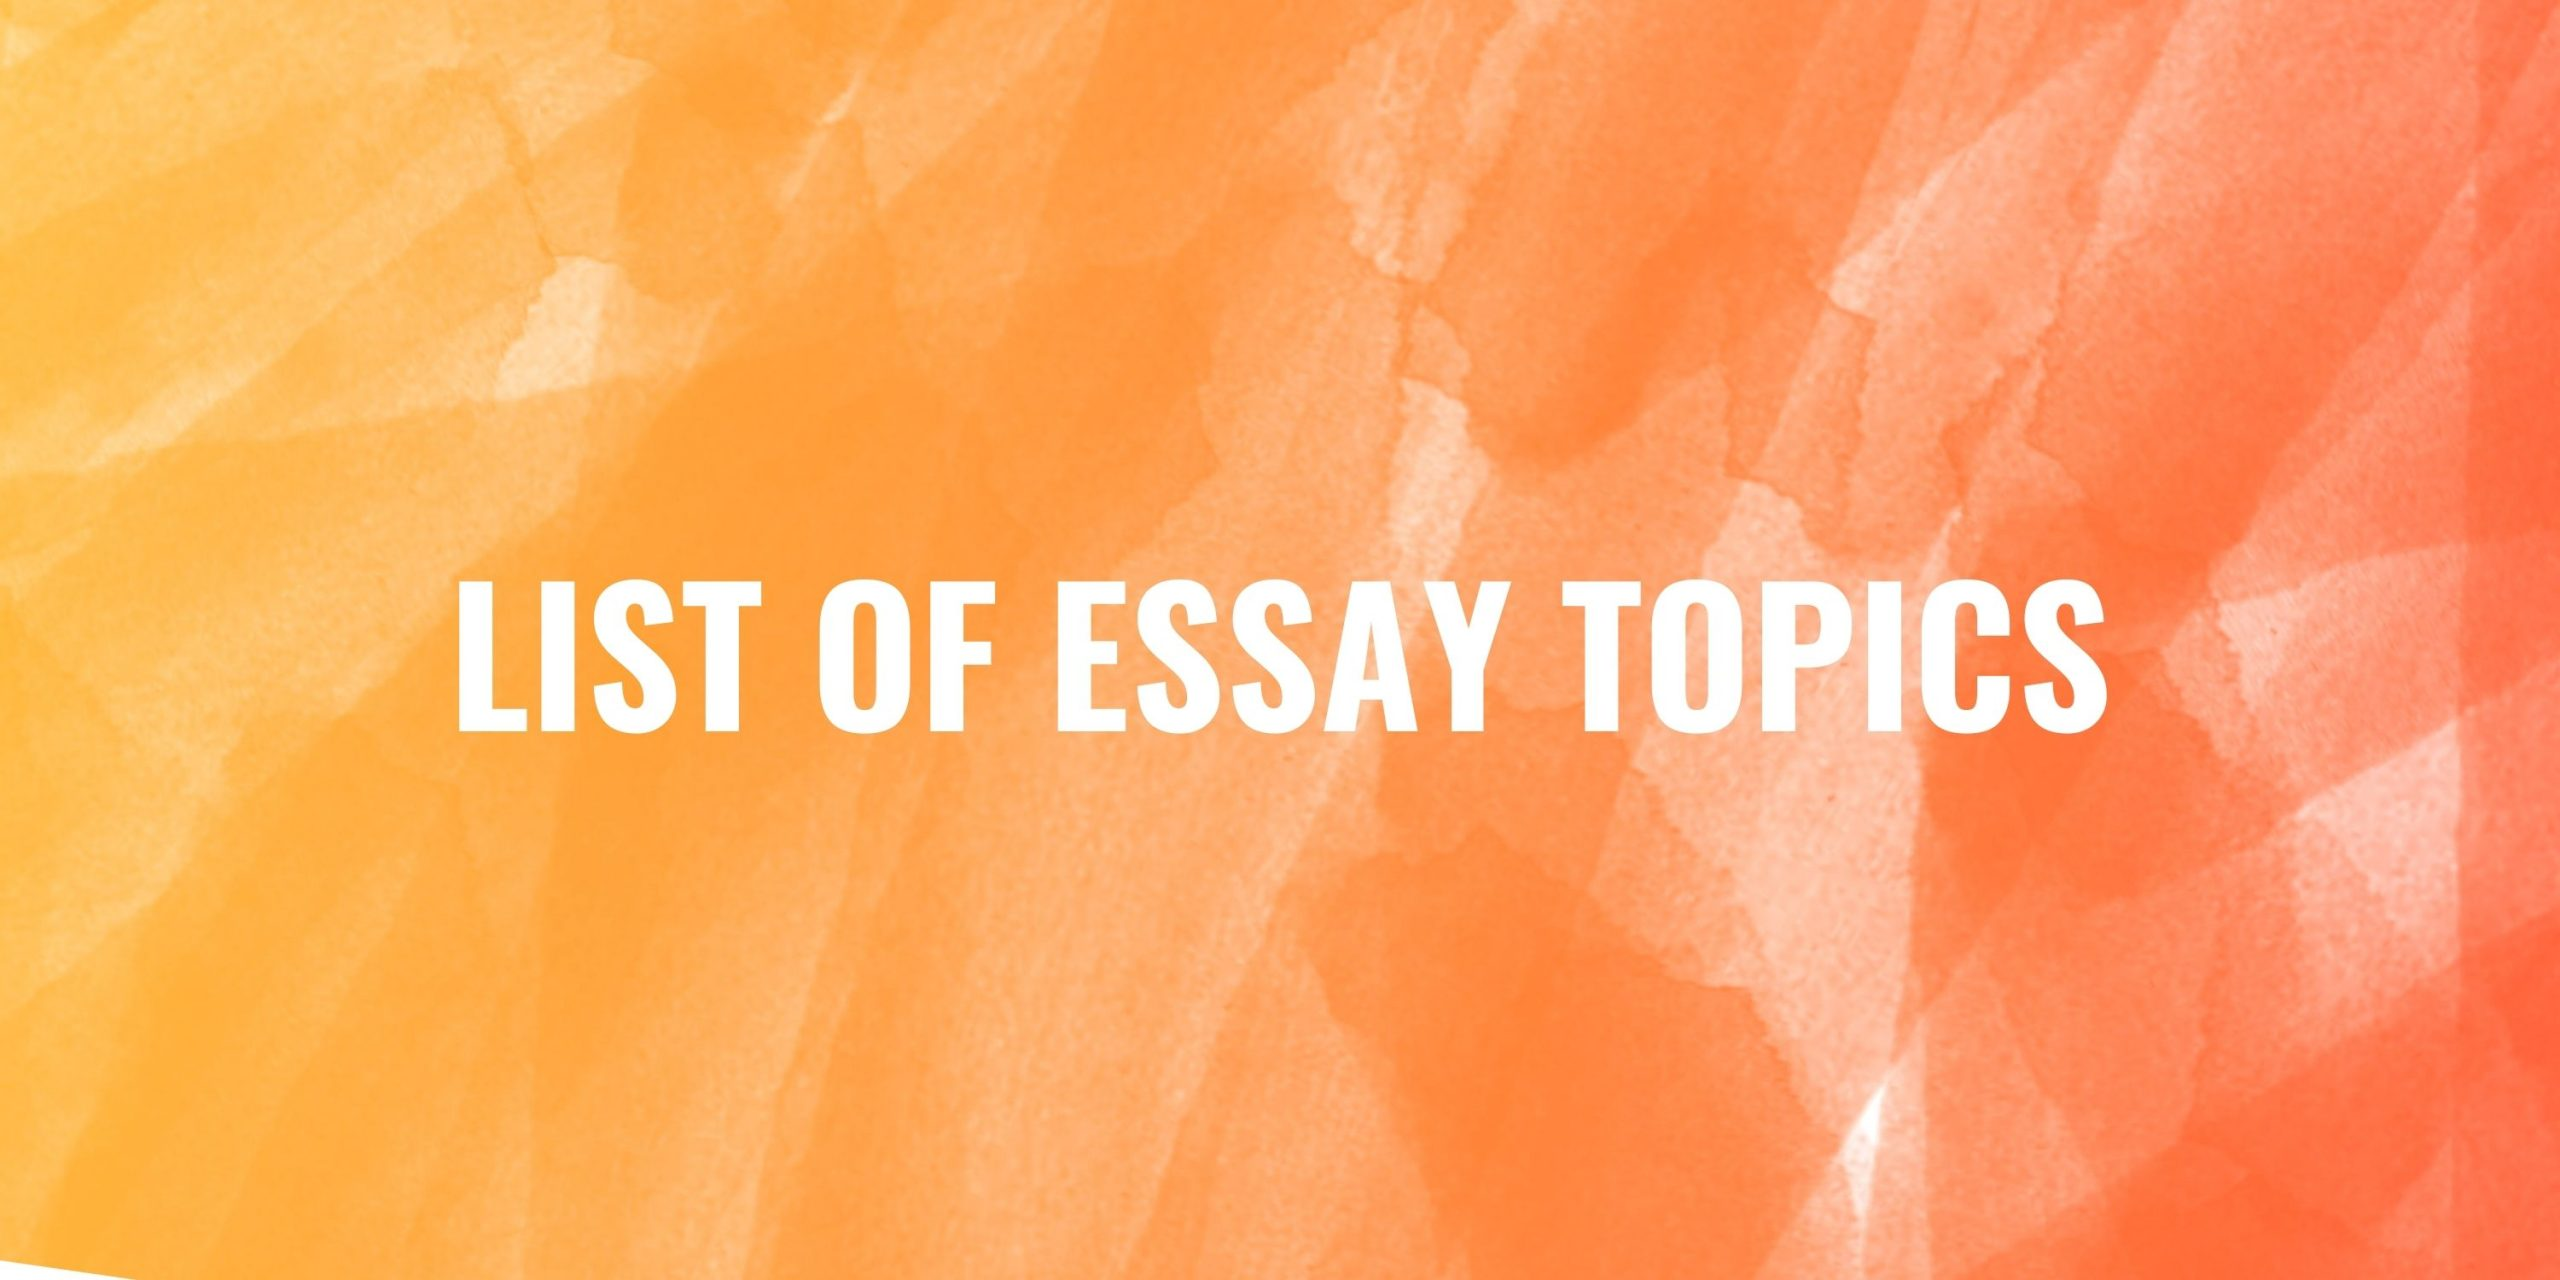 Essay Topics for students for Class 6th, to Class 10th.